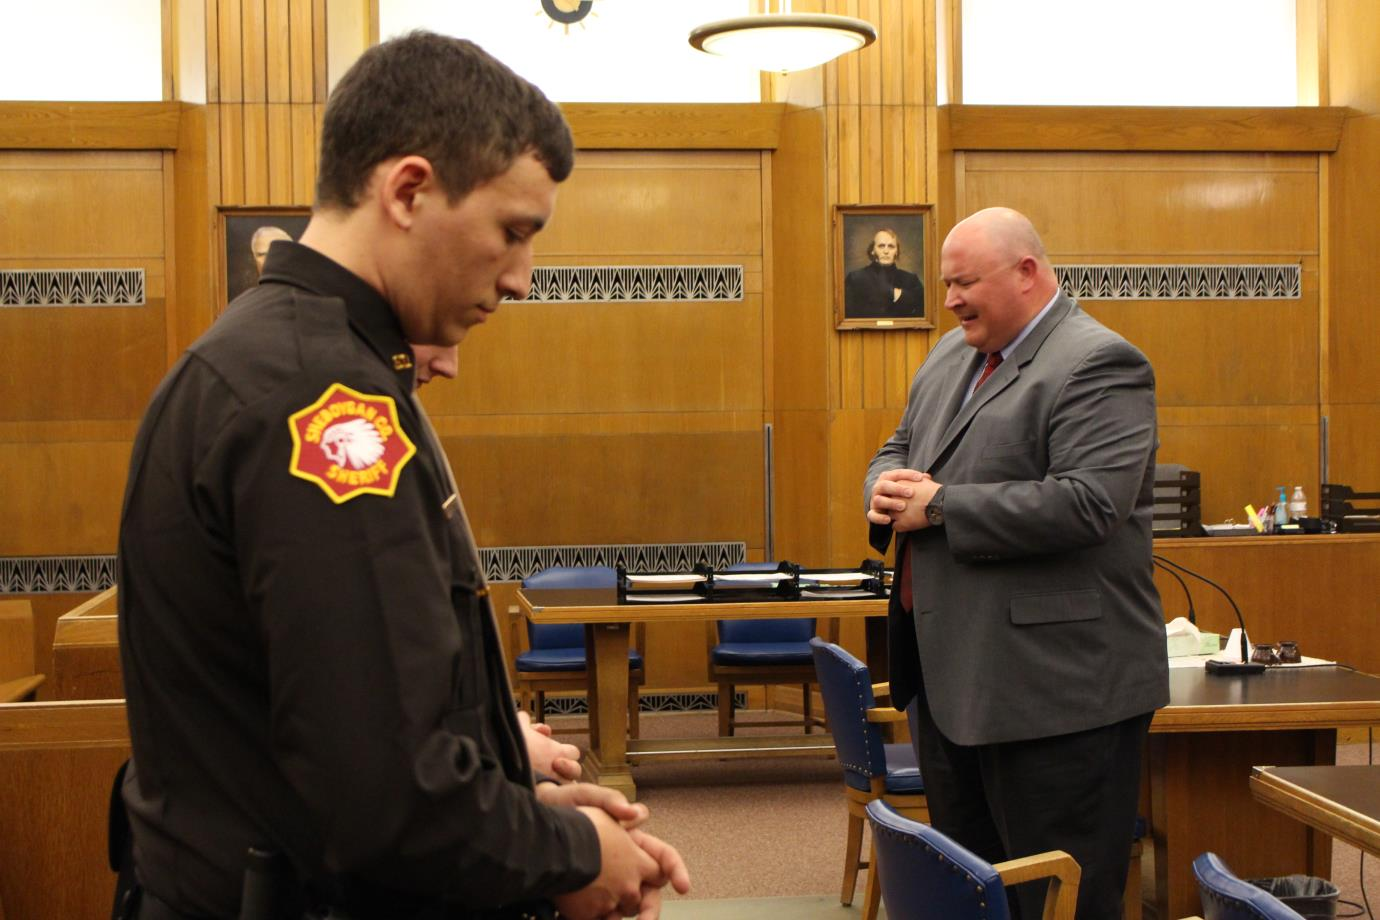 Officers take part in courtroom ceremony